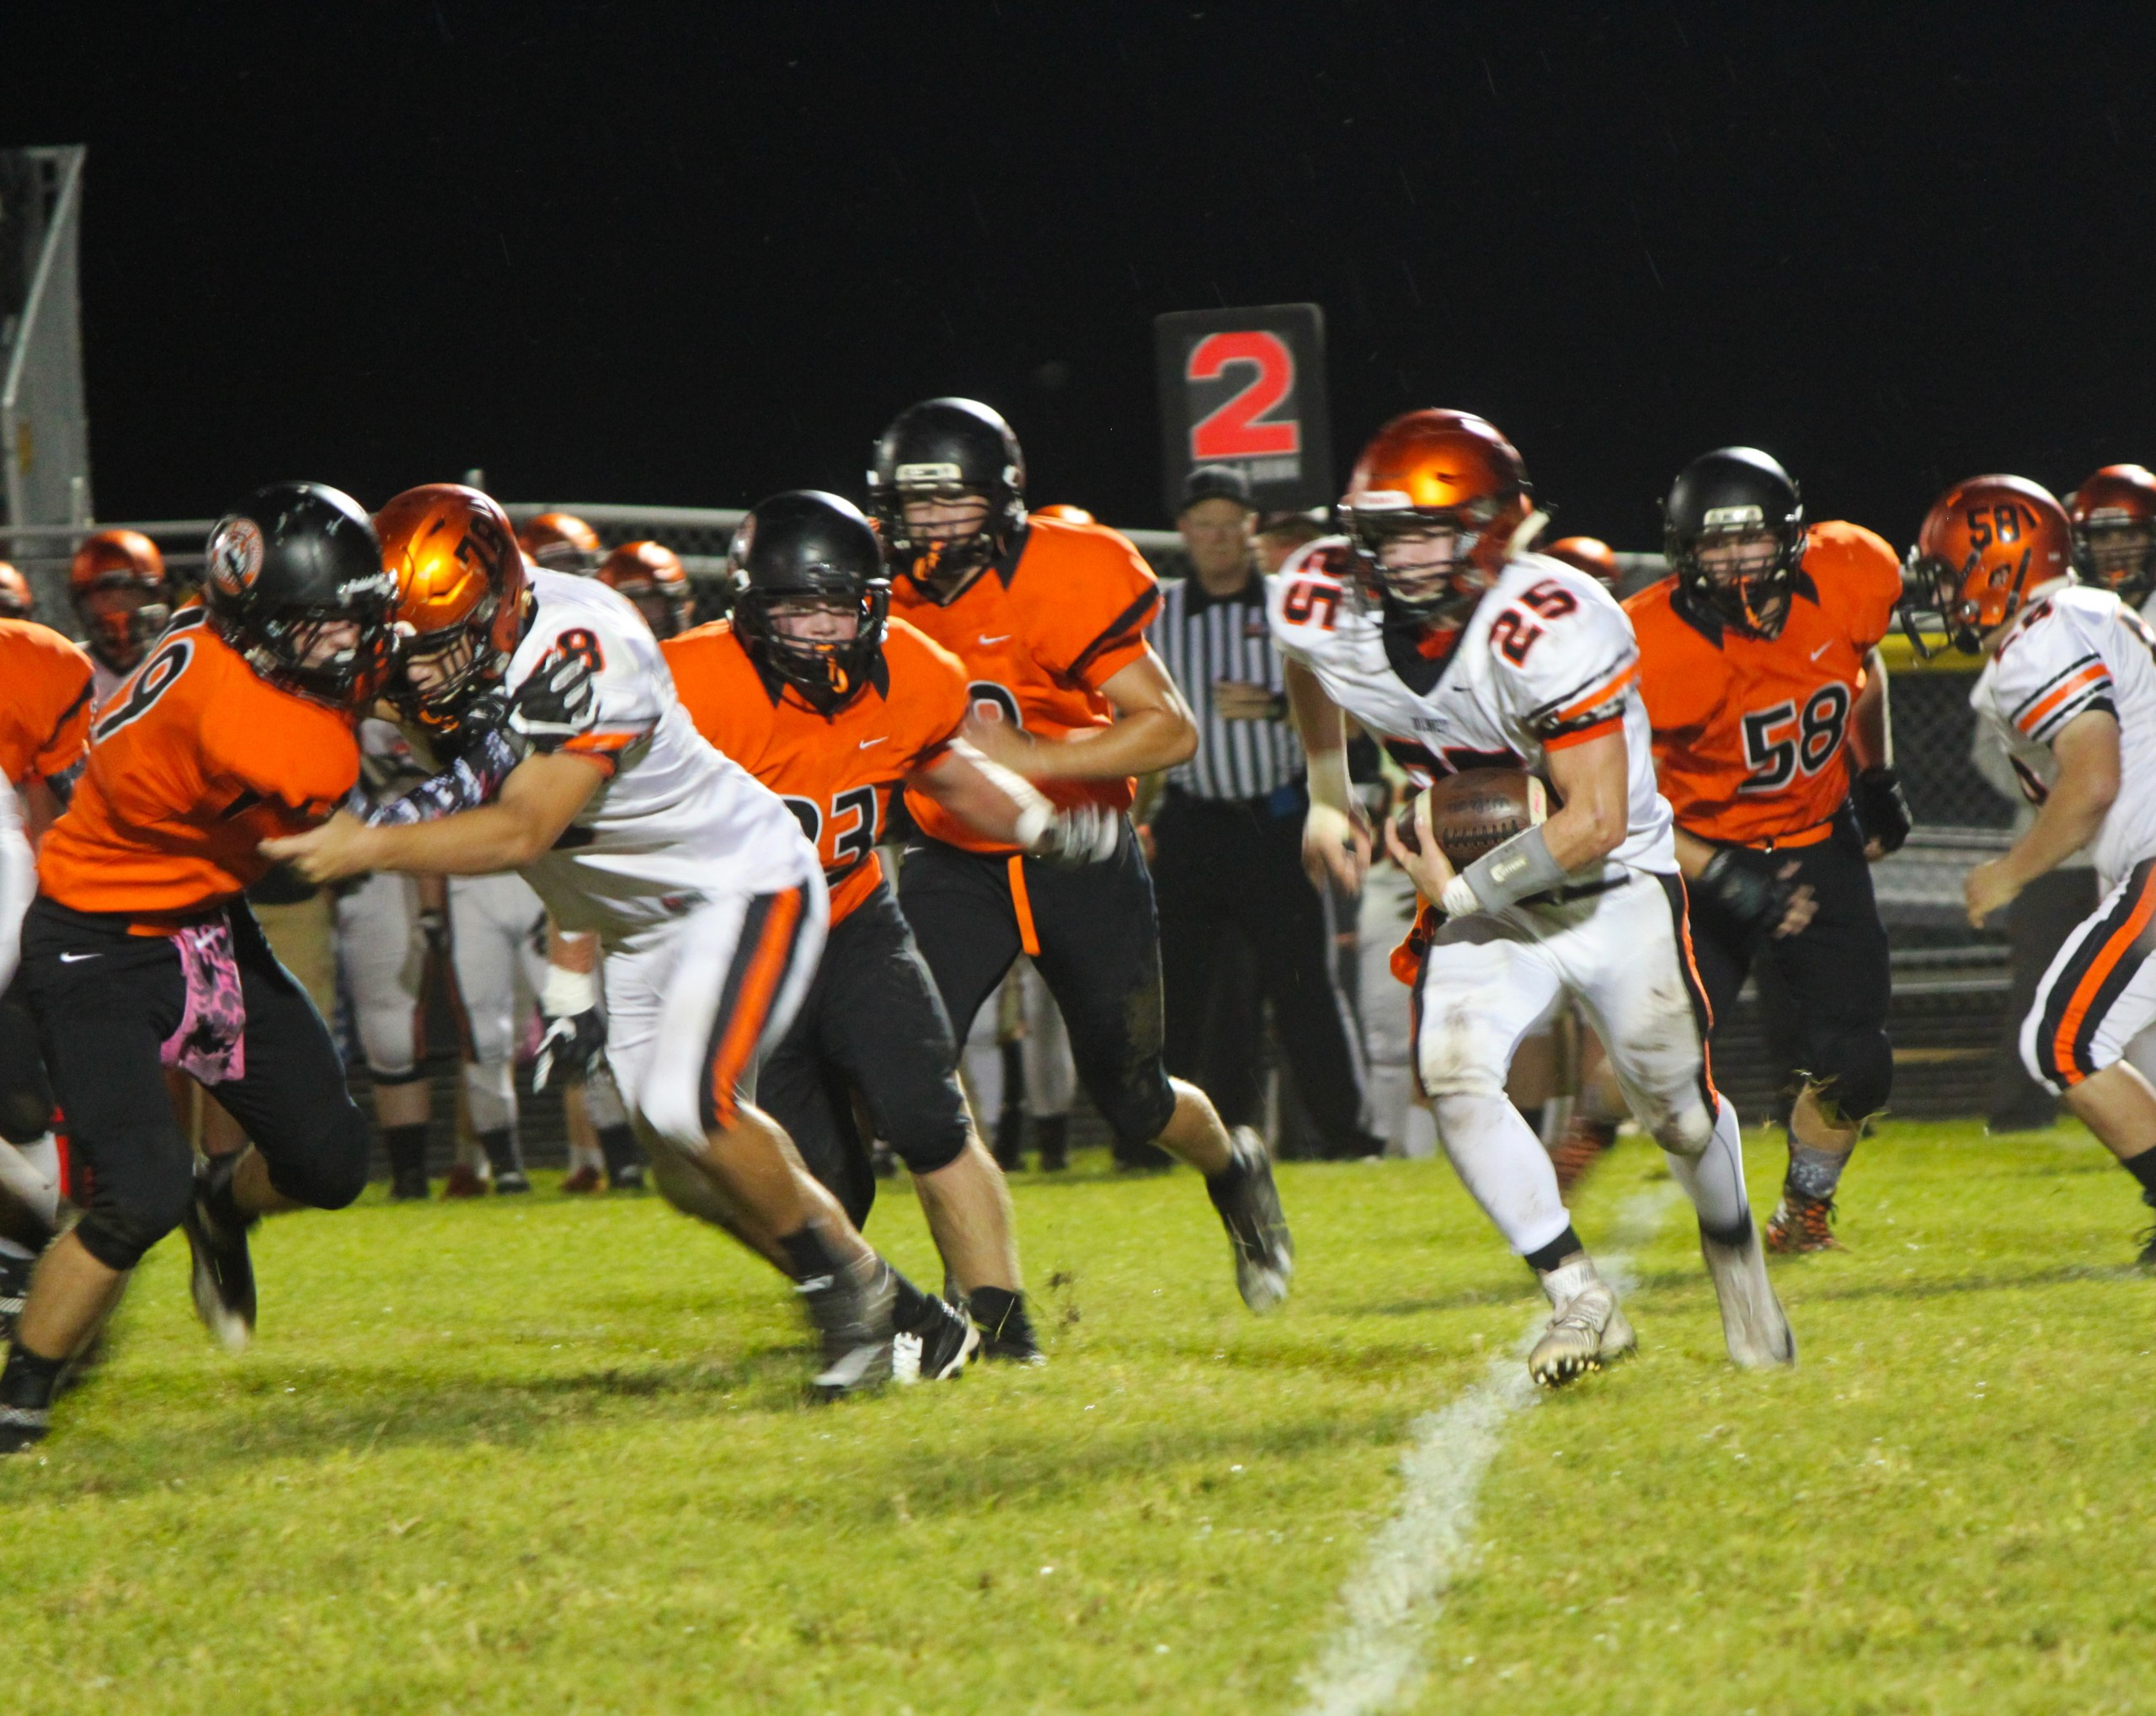 Paris loses to Olney in home game upset.